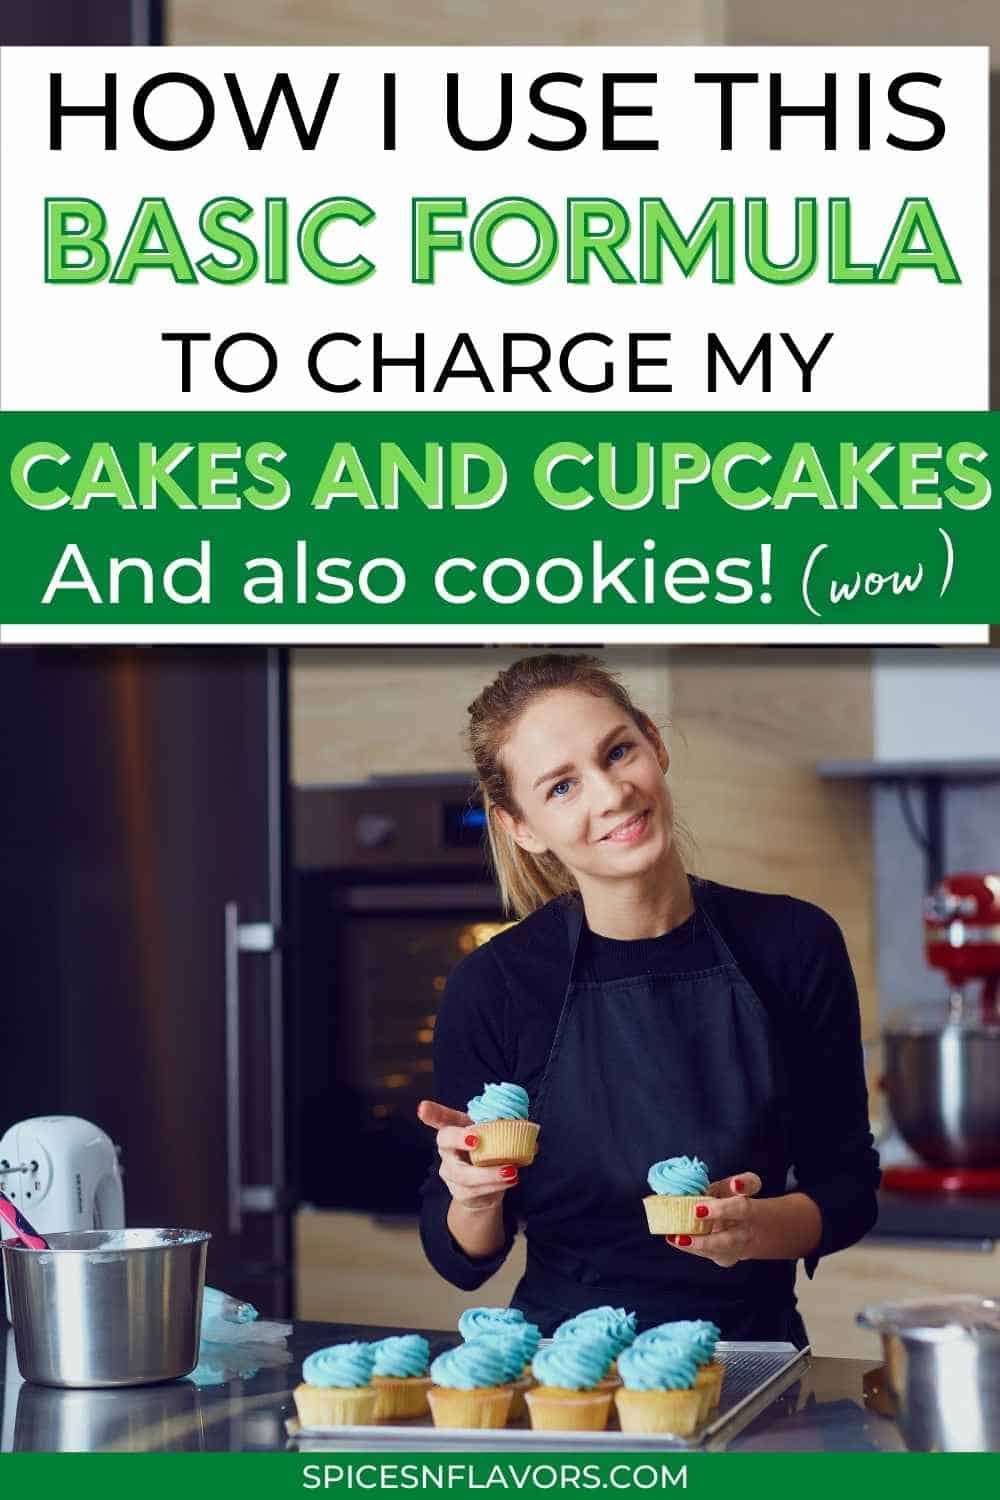 confident woman holding cupcake with text stating how to use the formula to calculate price of cake